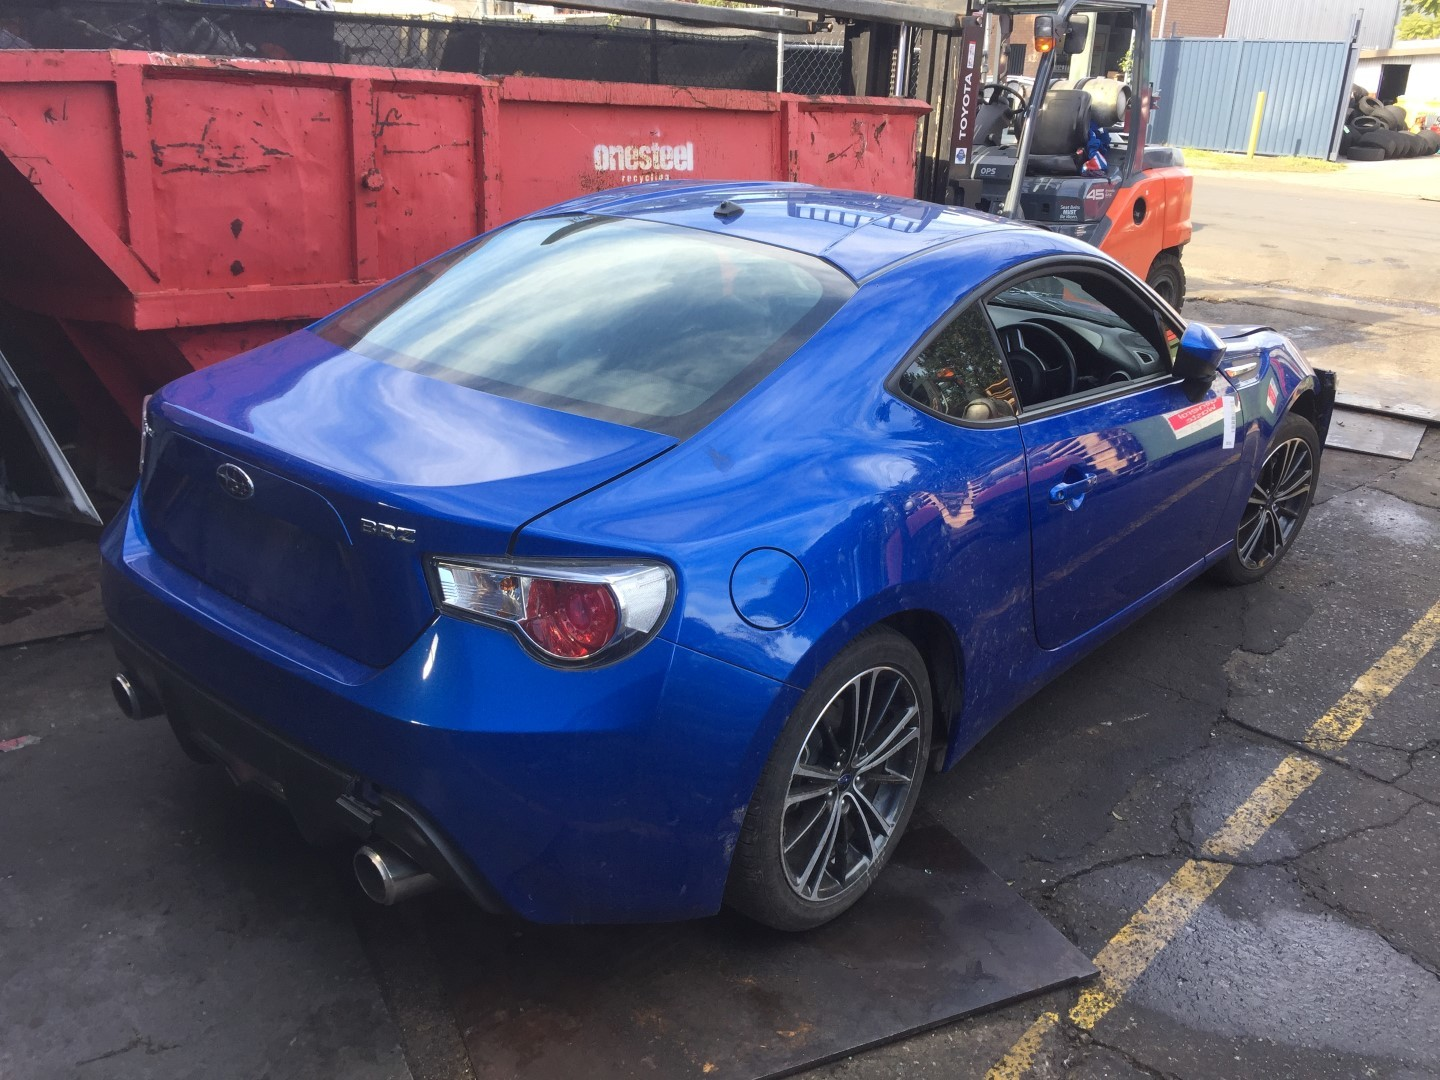 Subaru Wrecking BRZ 2013 FA20 Spare Parts Onboost